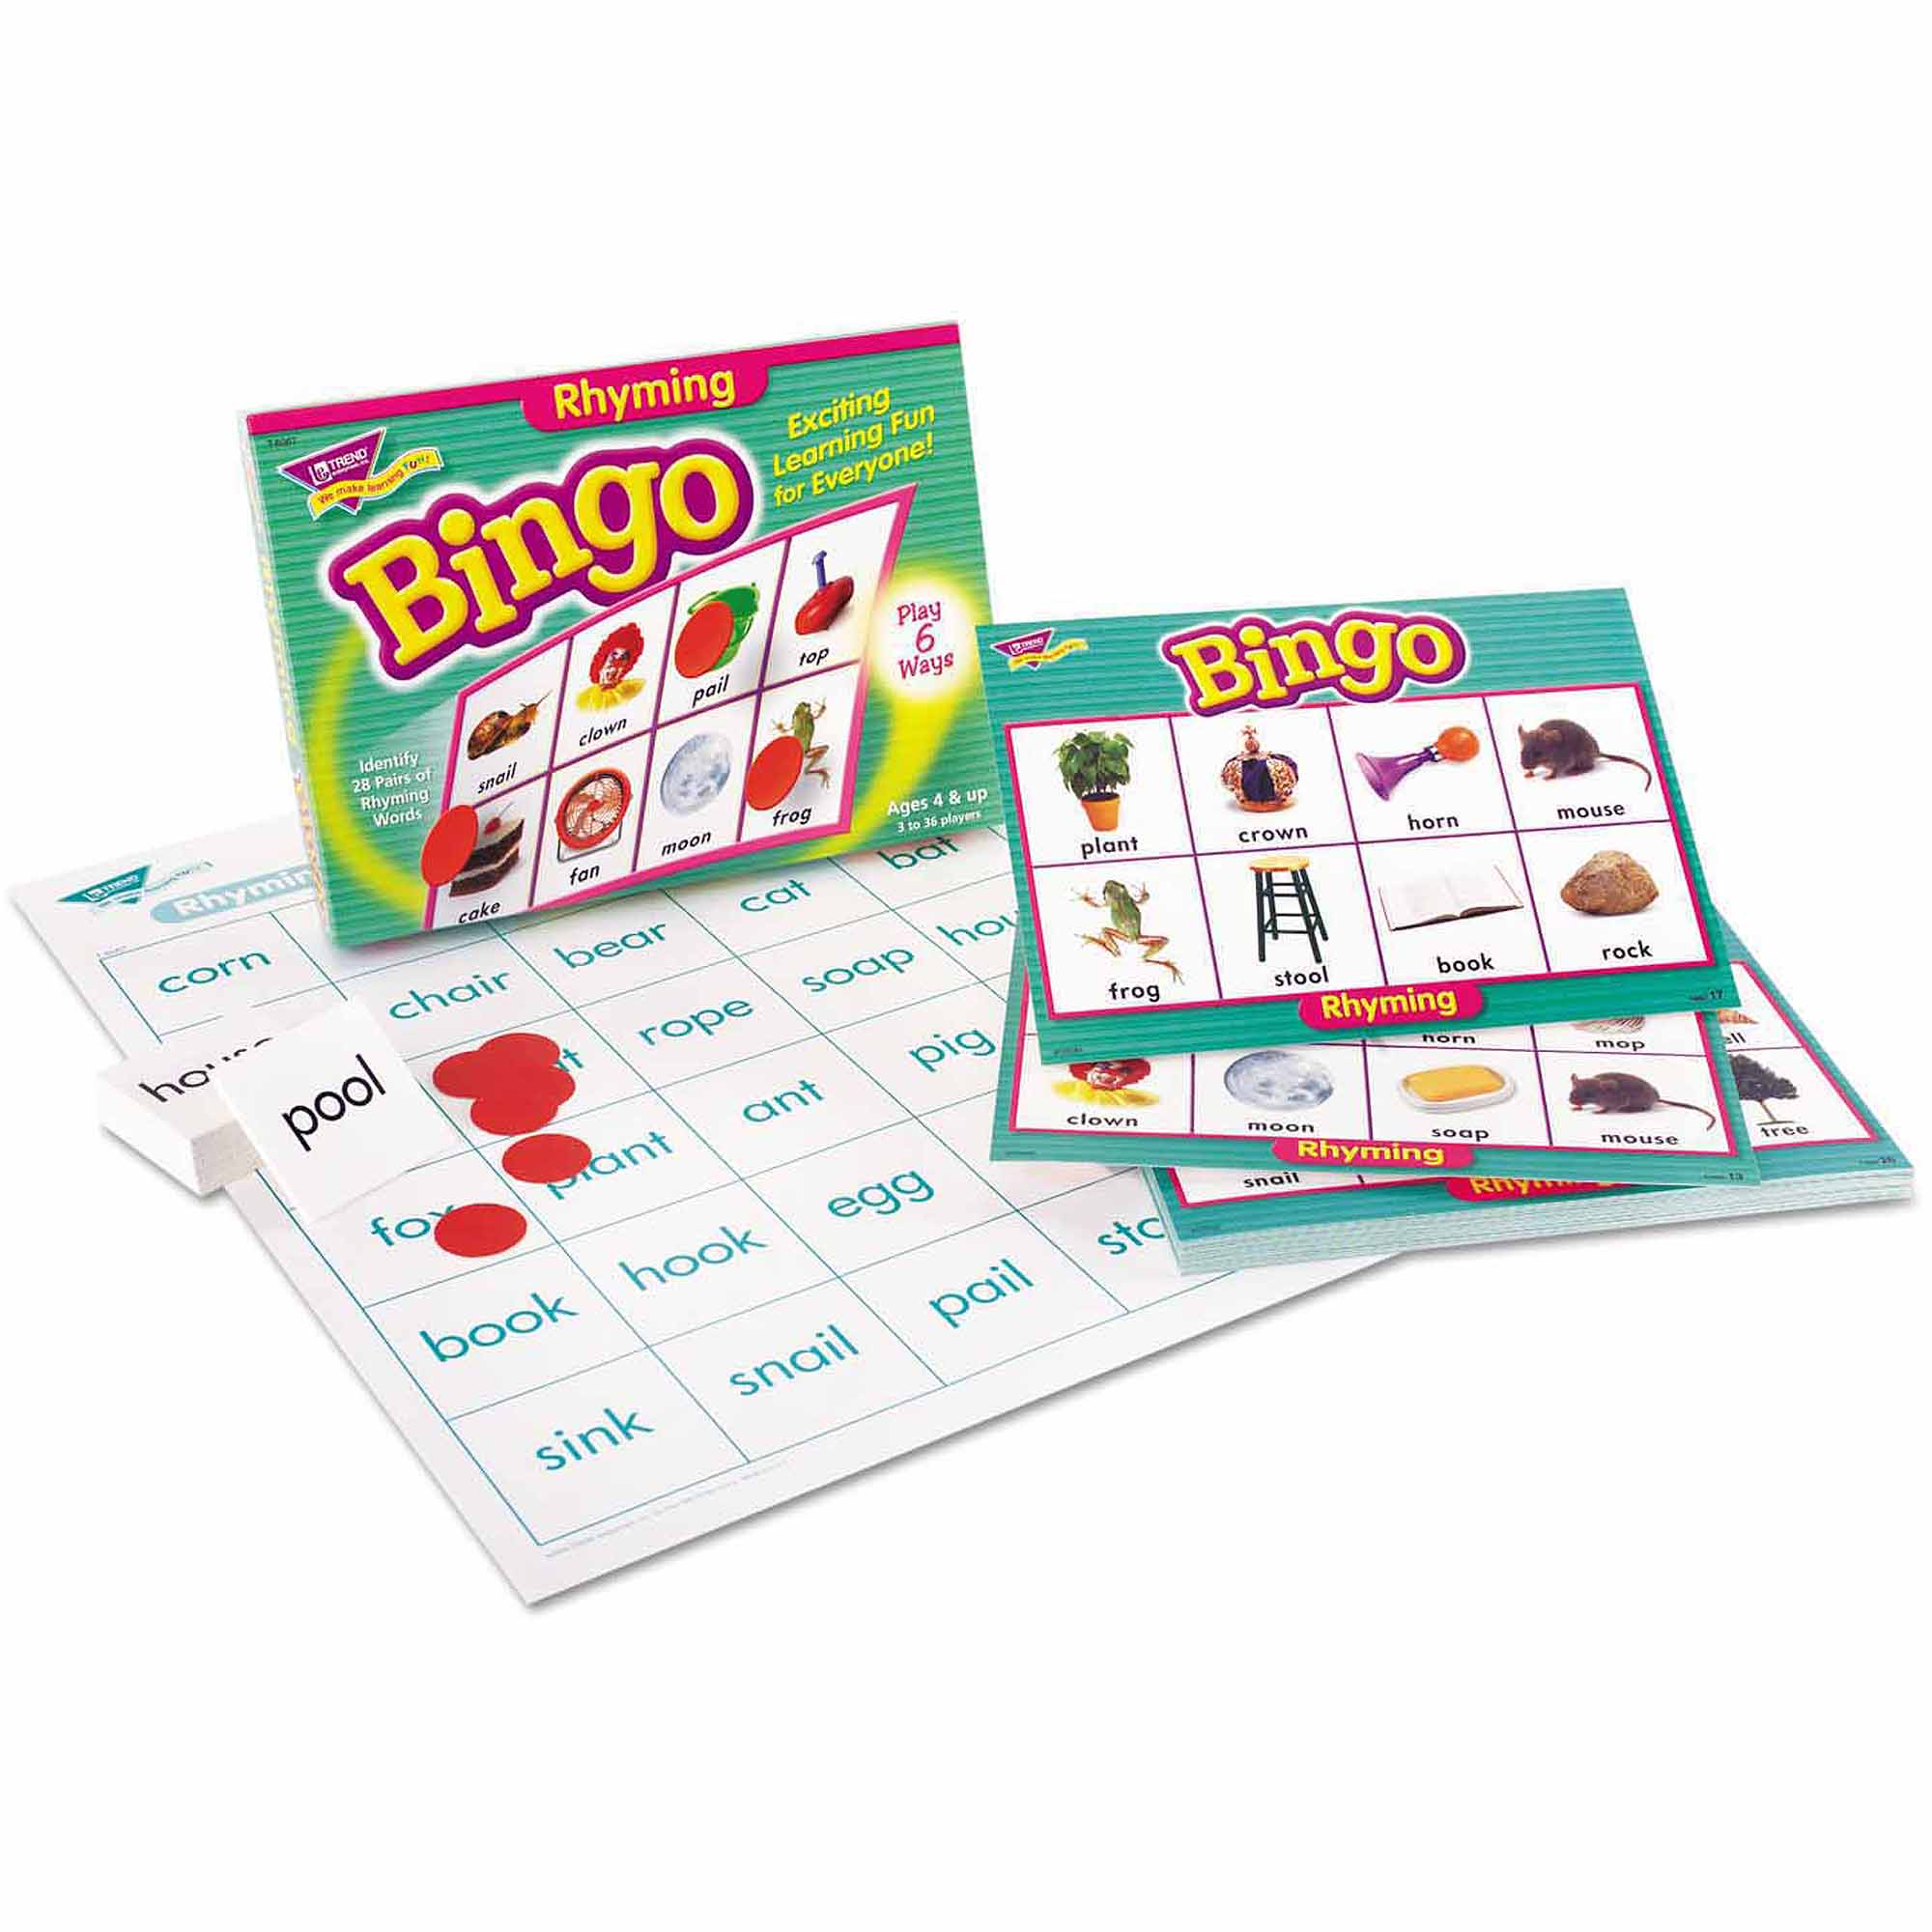 TREND Young Learner Bingo Game, Rhyming Words